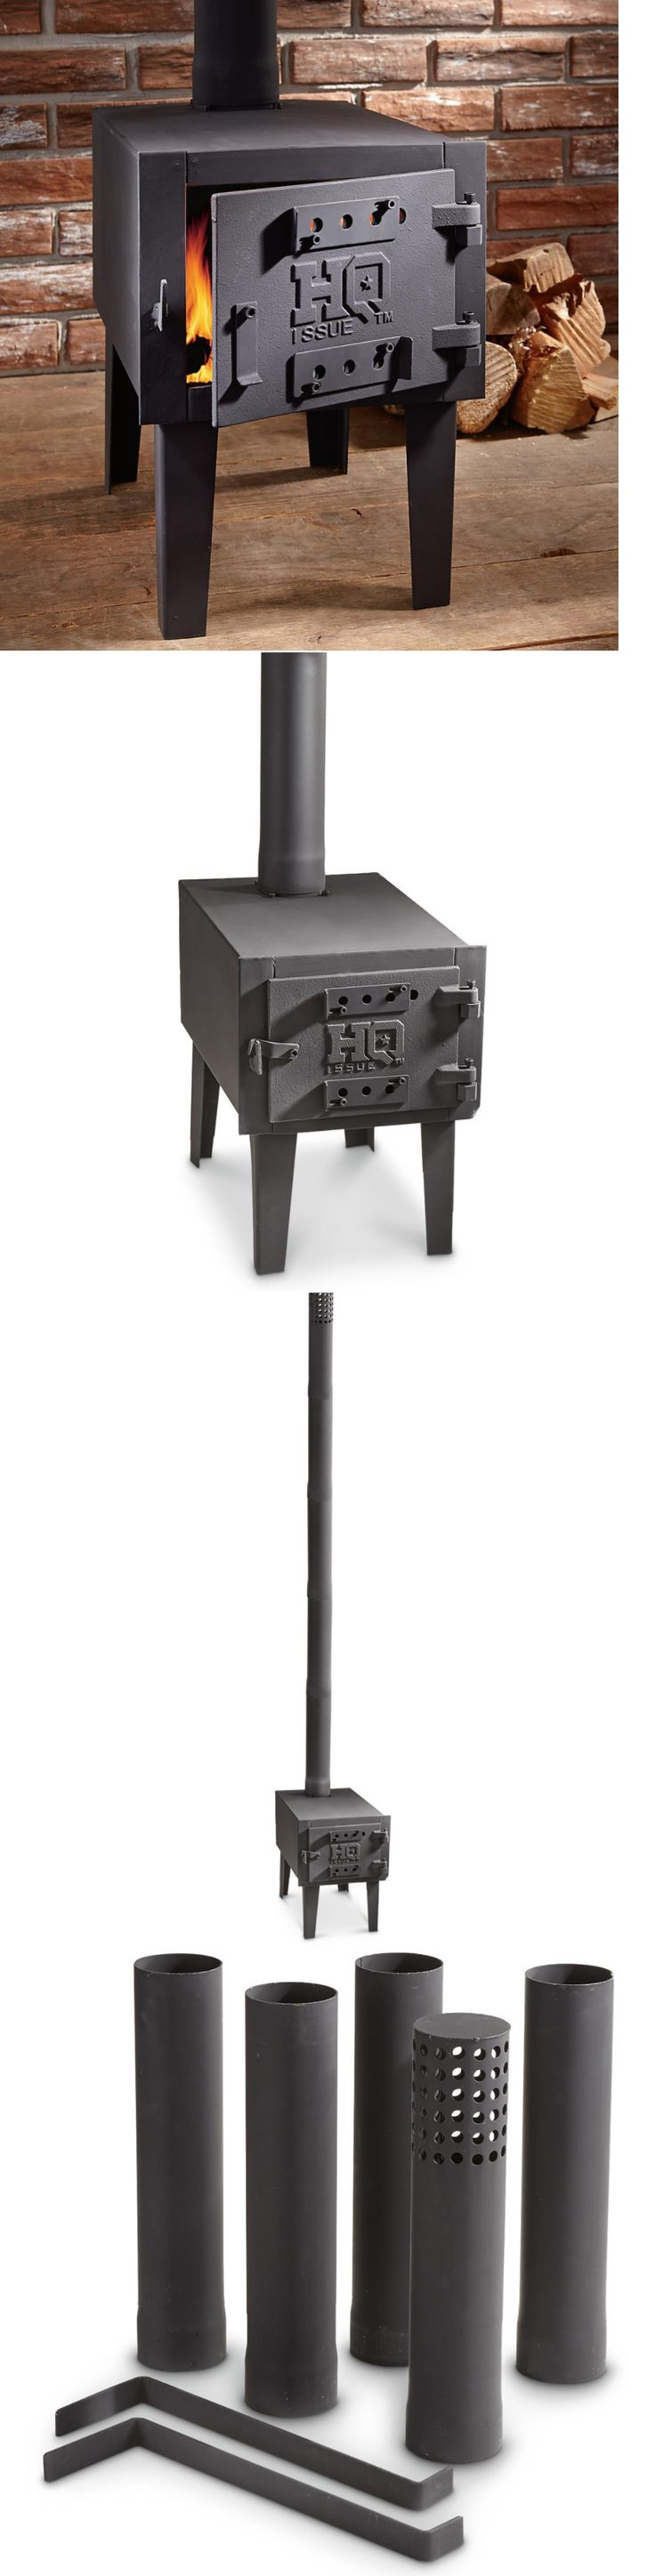 Outstanding recommended small wood burning stoves - Camping Stoves 181386 Wood Burning Stove Fireplace Fire Small Pipe Burner Outdoor Heater Camping Gear